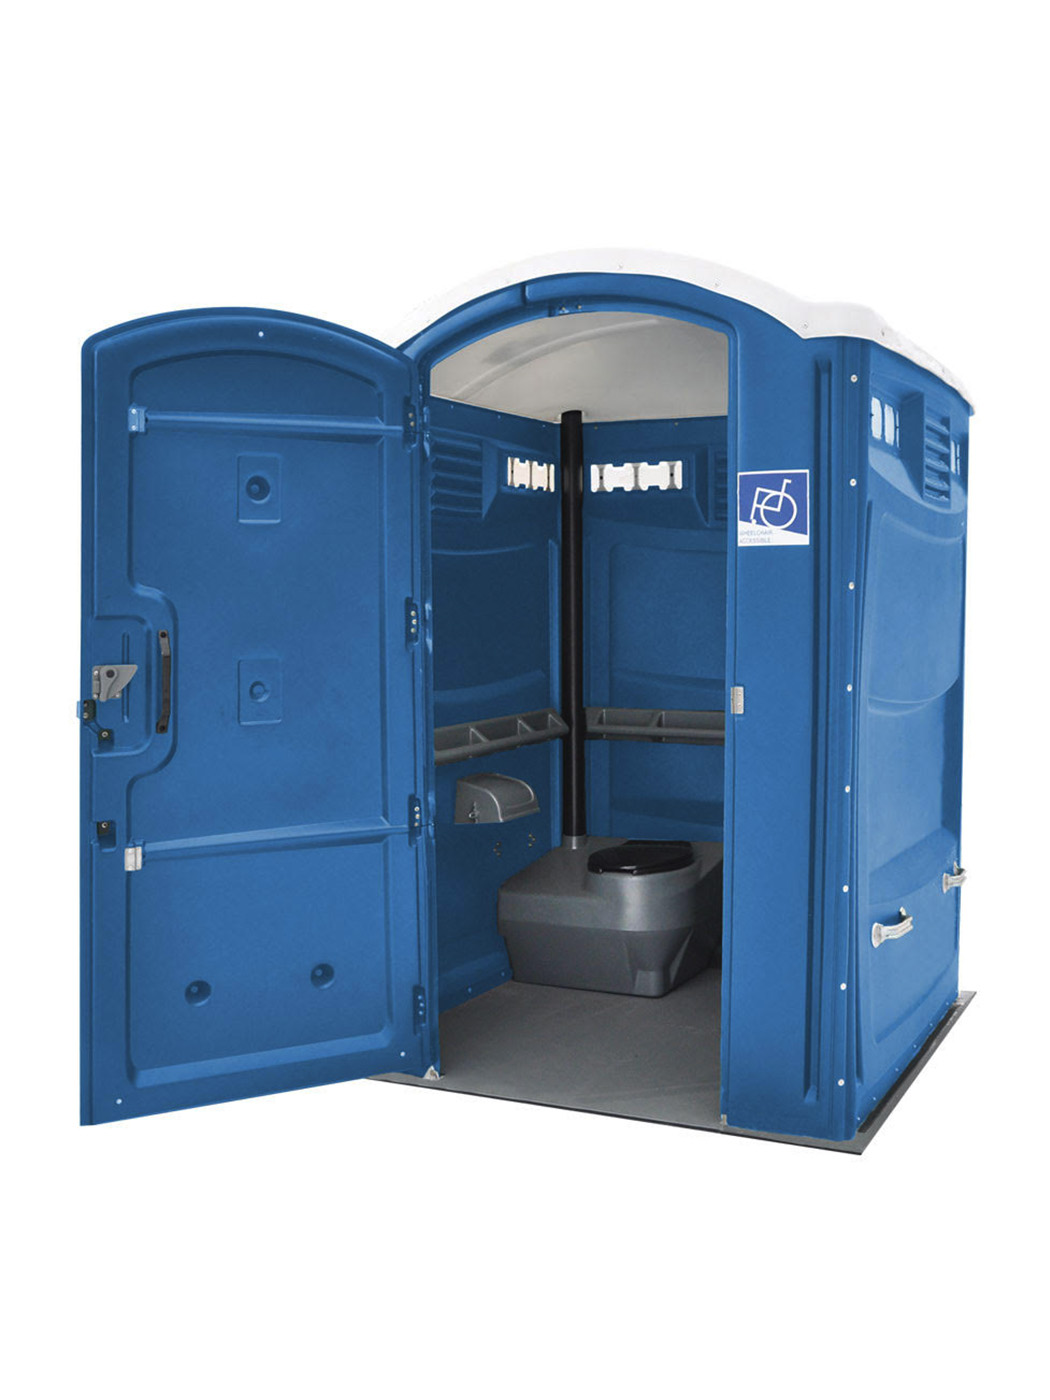 Jimmy's Johnnys Handicap Accessible Portable Toilet